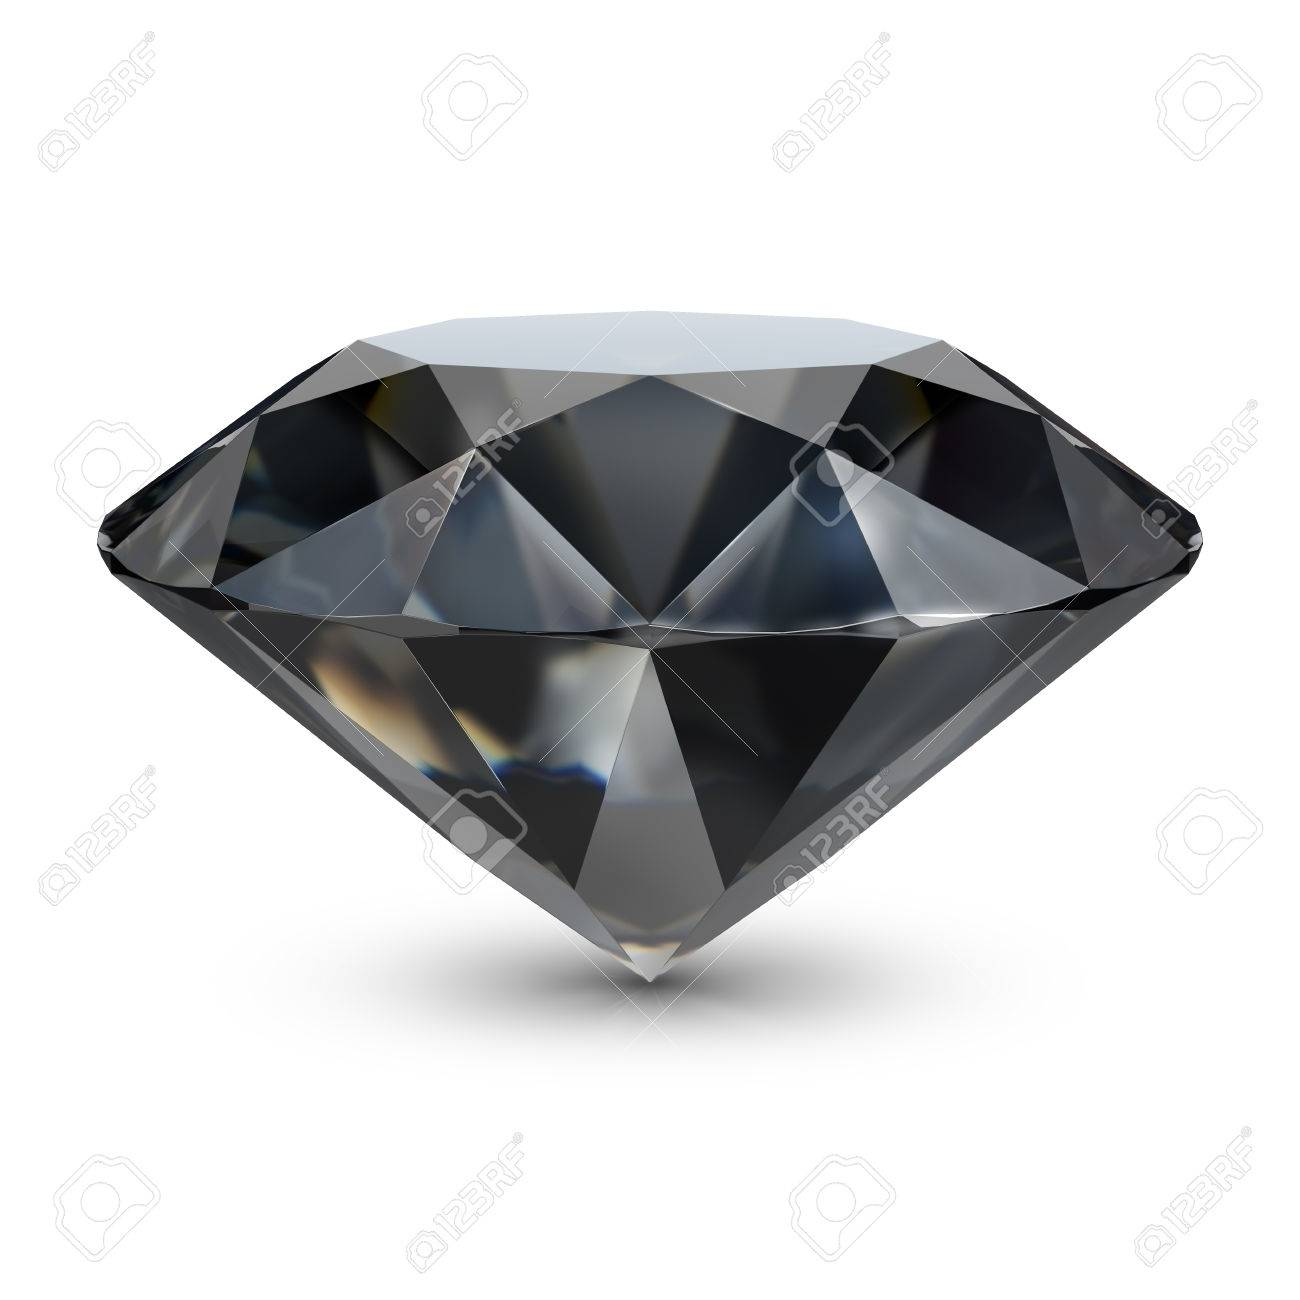 Black Diamond Black Diamond 3d Image Isolated White Background